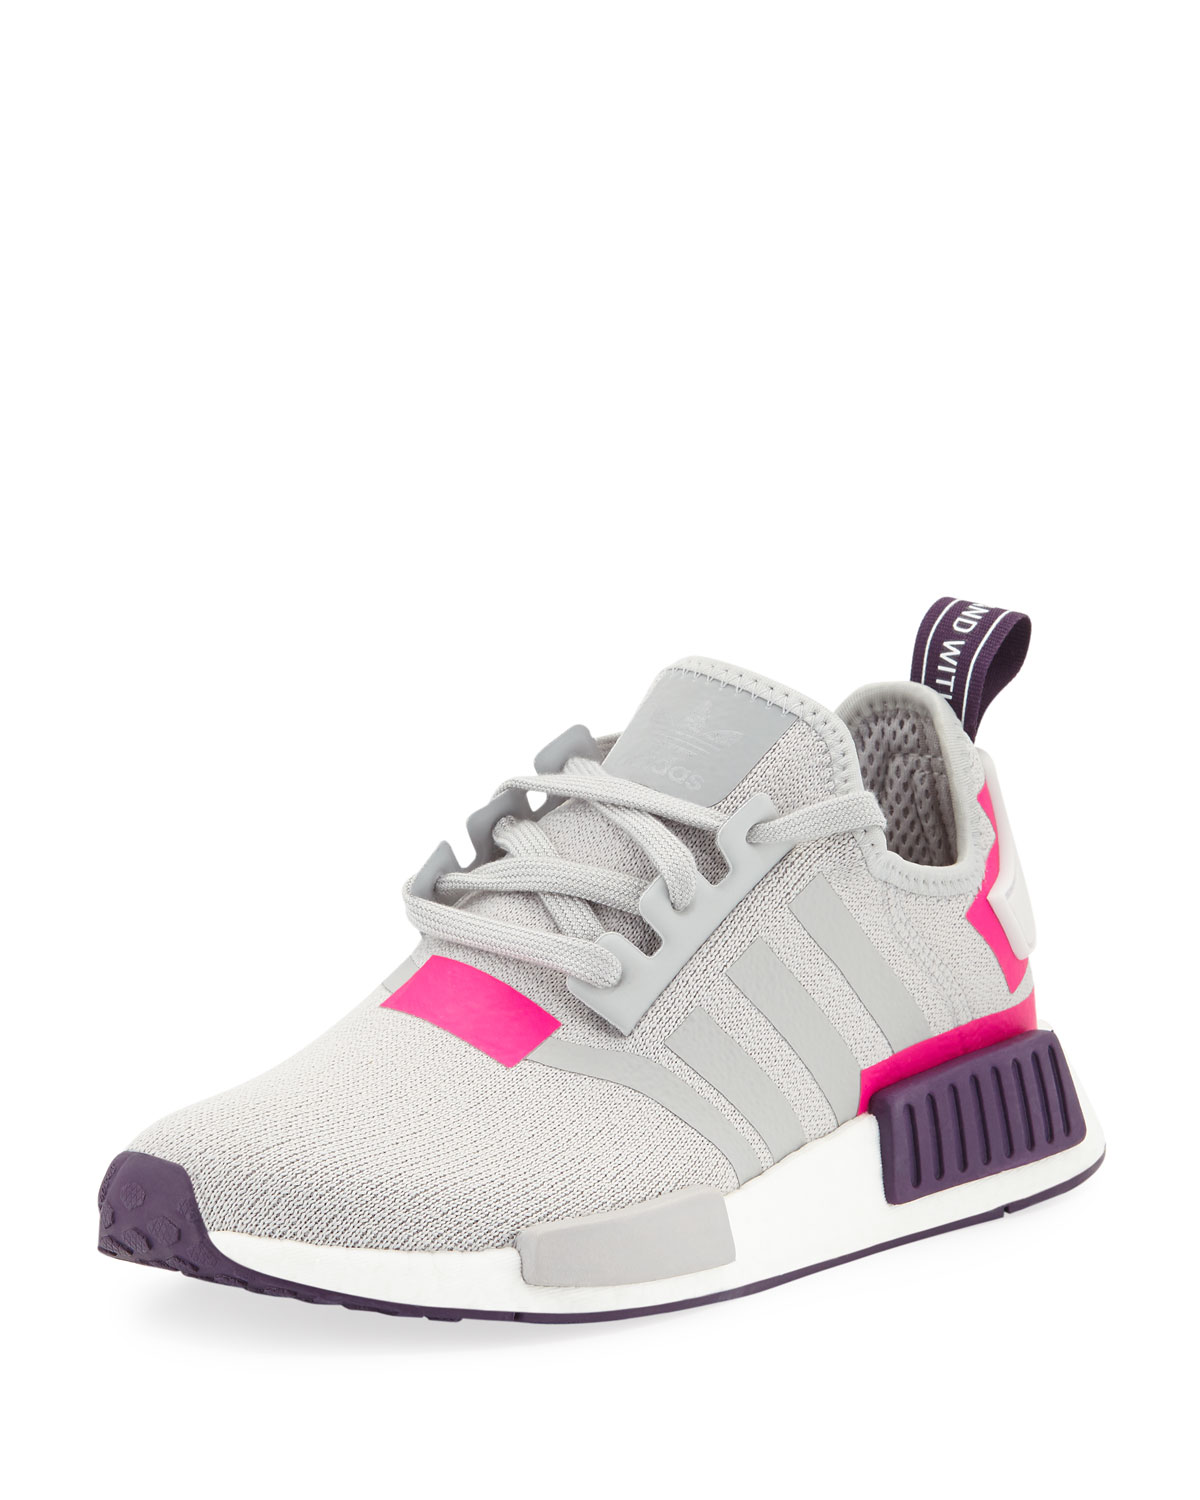 new arrival b116b b4730 AdidasNMD R1 Knit Running Sneakers